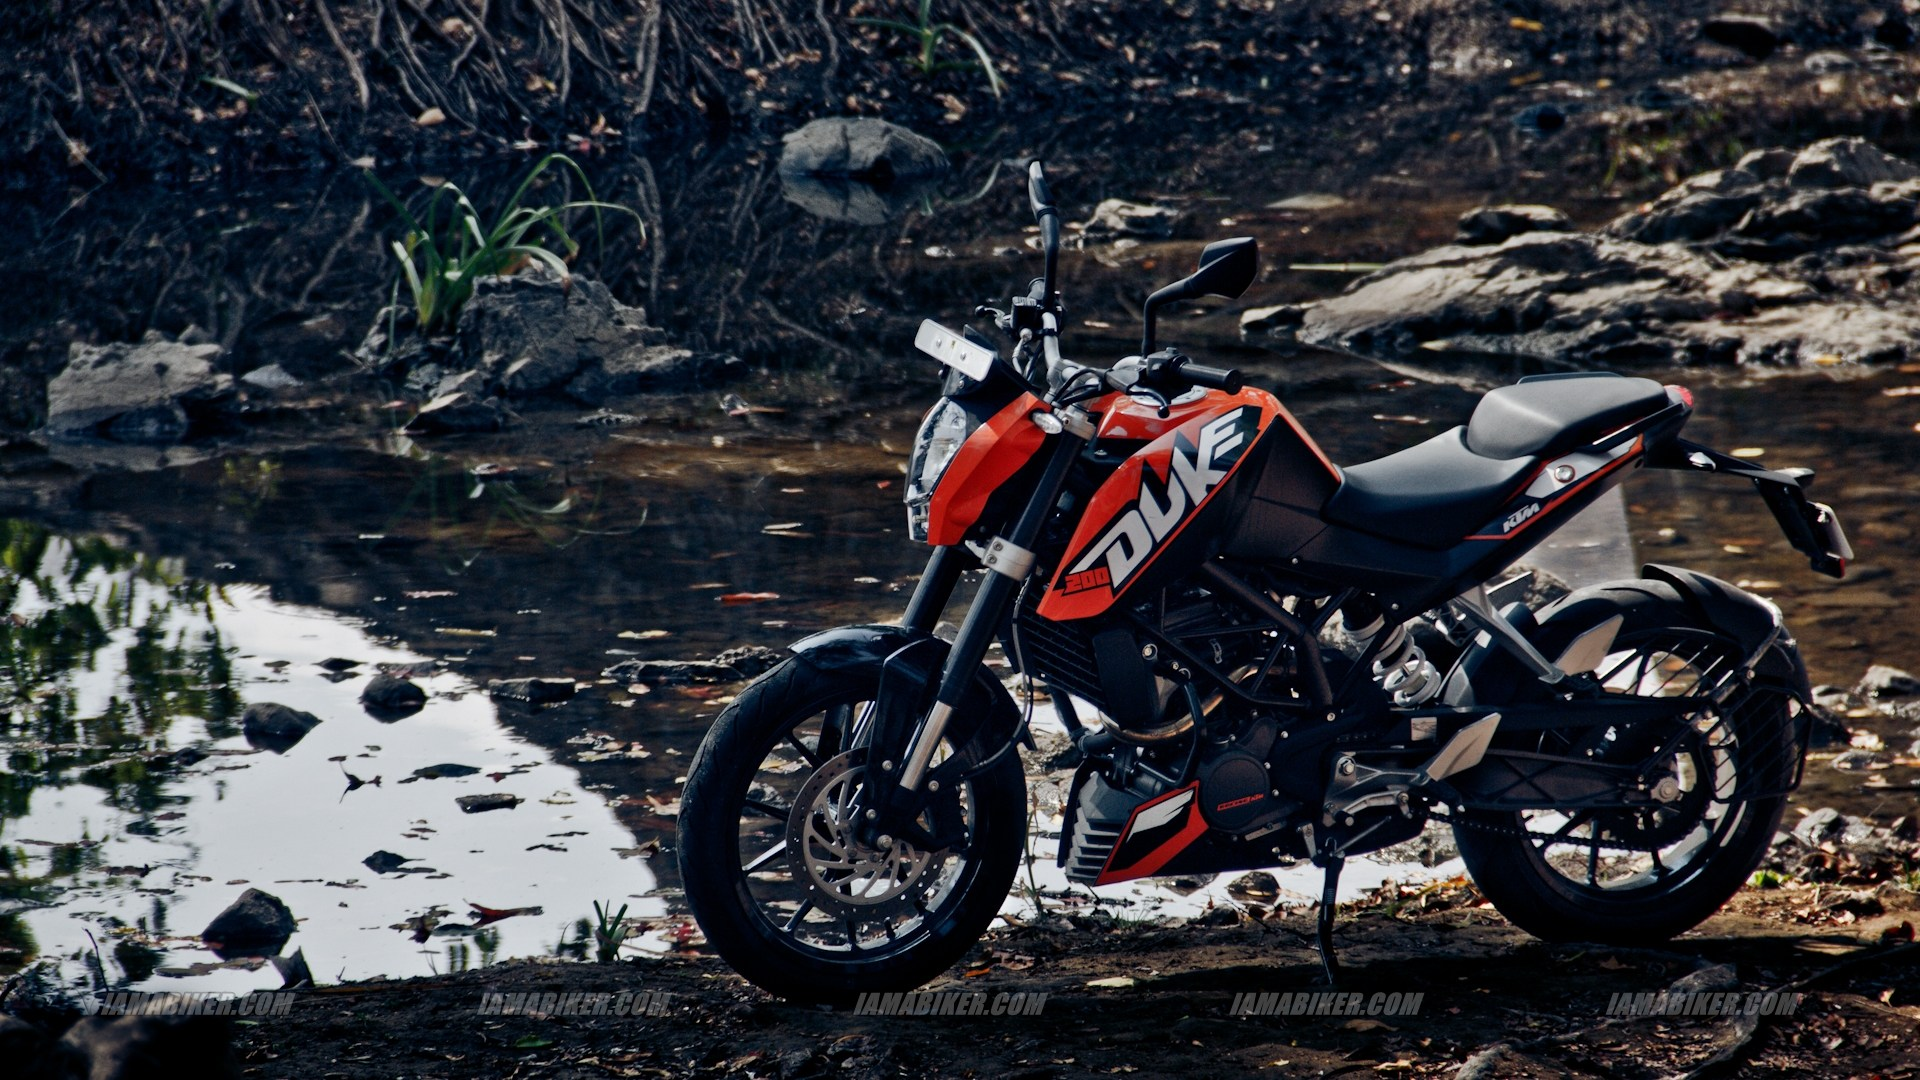 Ktm Duke 125 Wallpaper Hd 1920x1080 Download Hd Wallpaper Wallpapertip